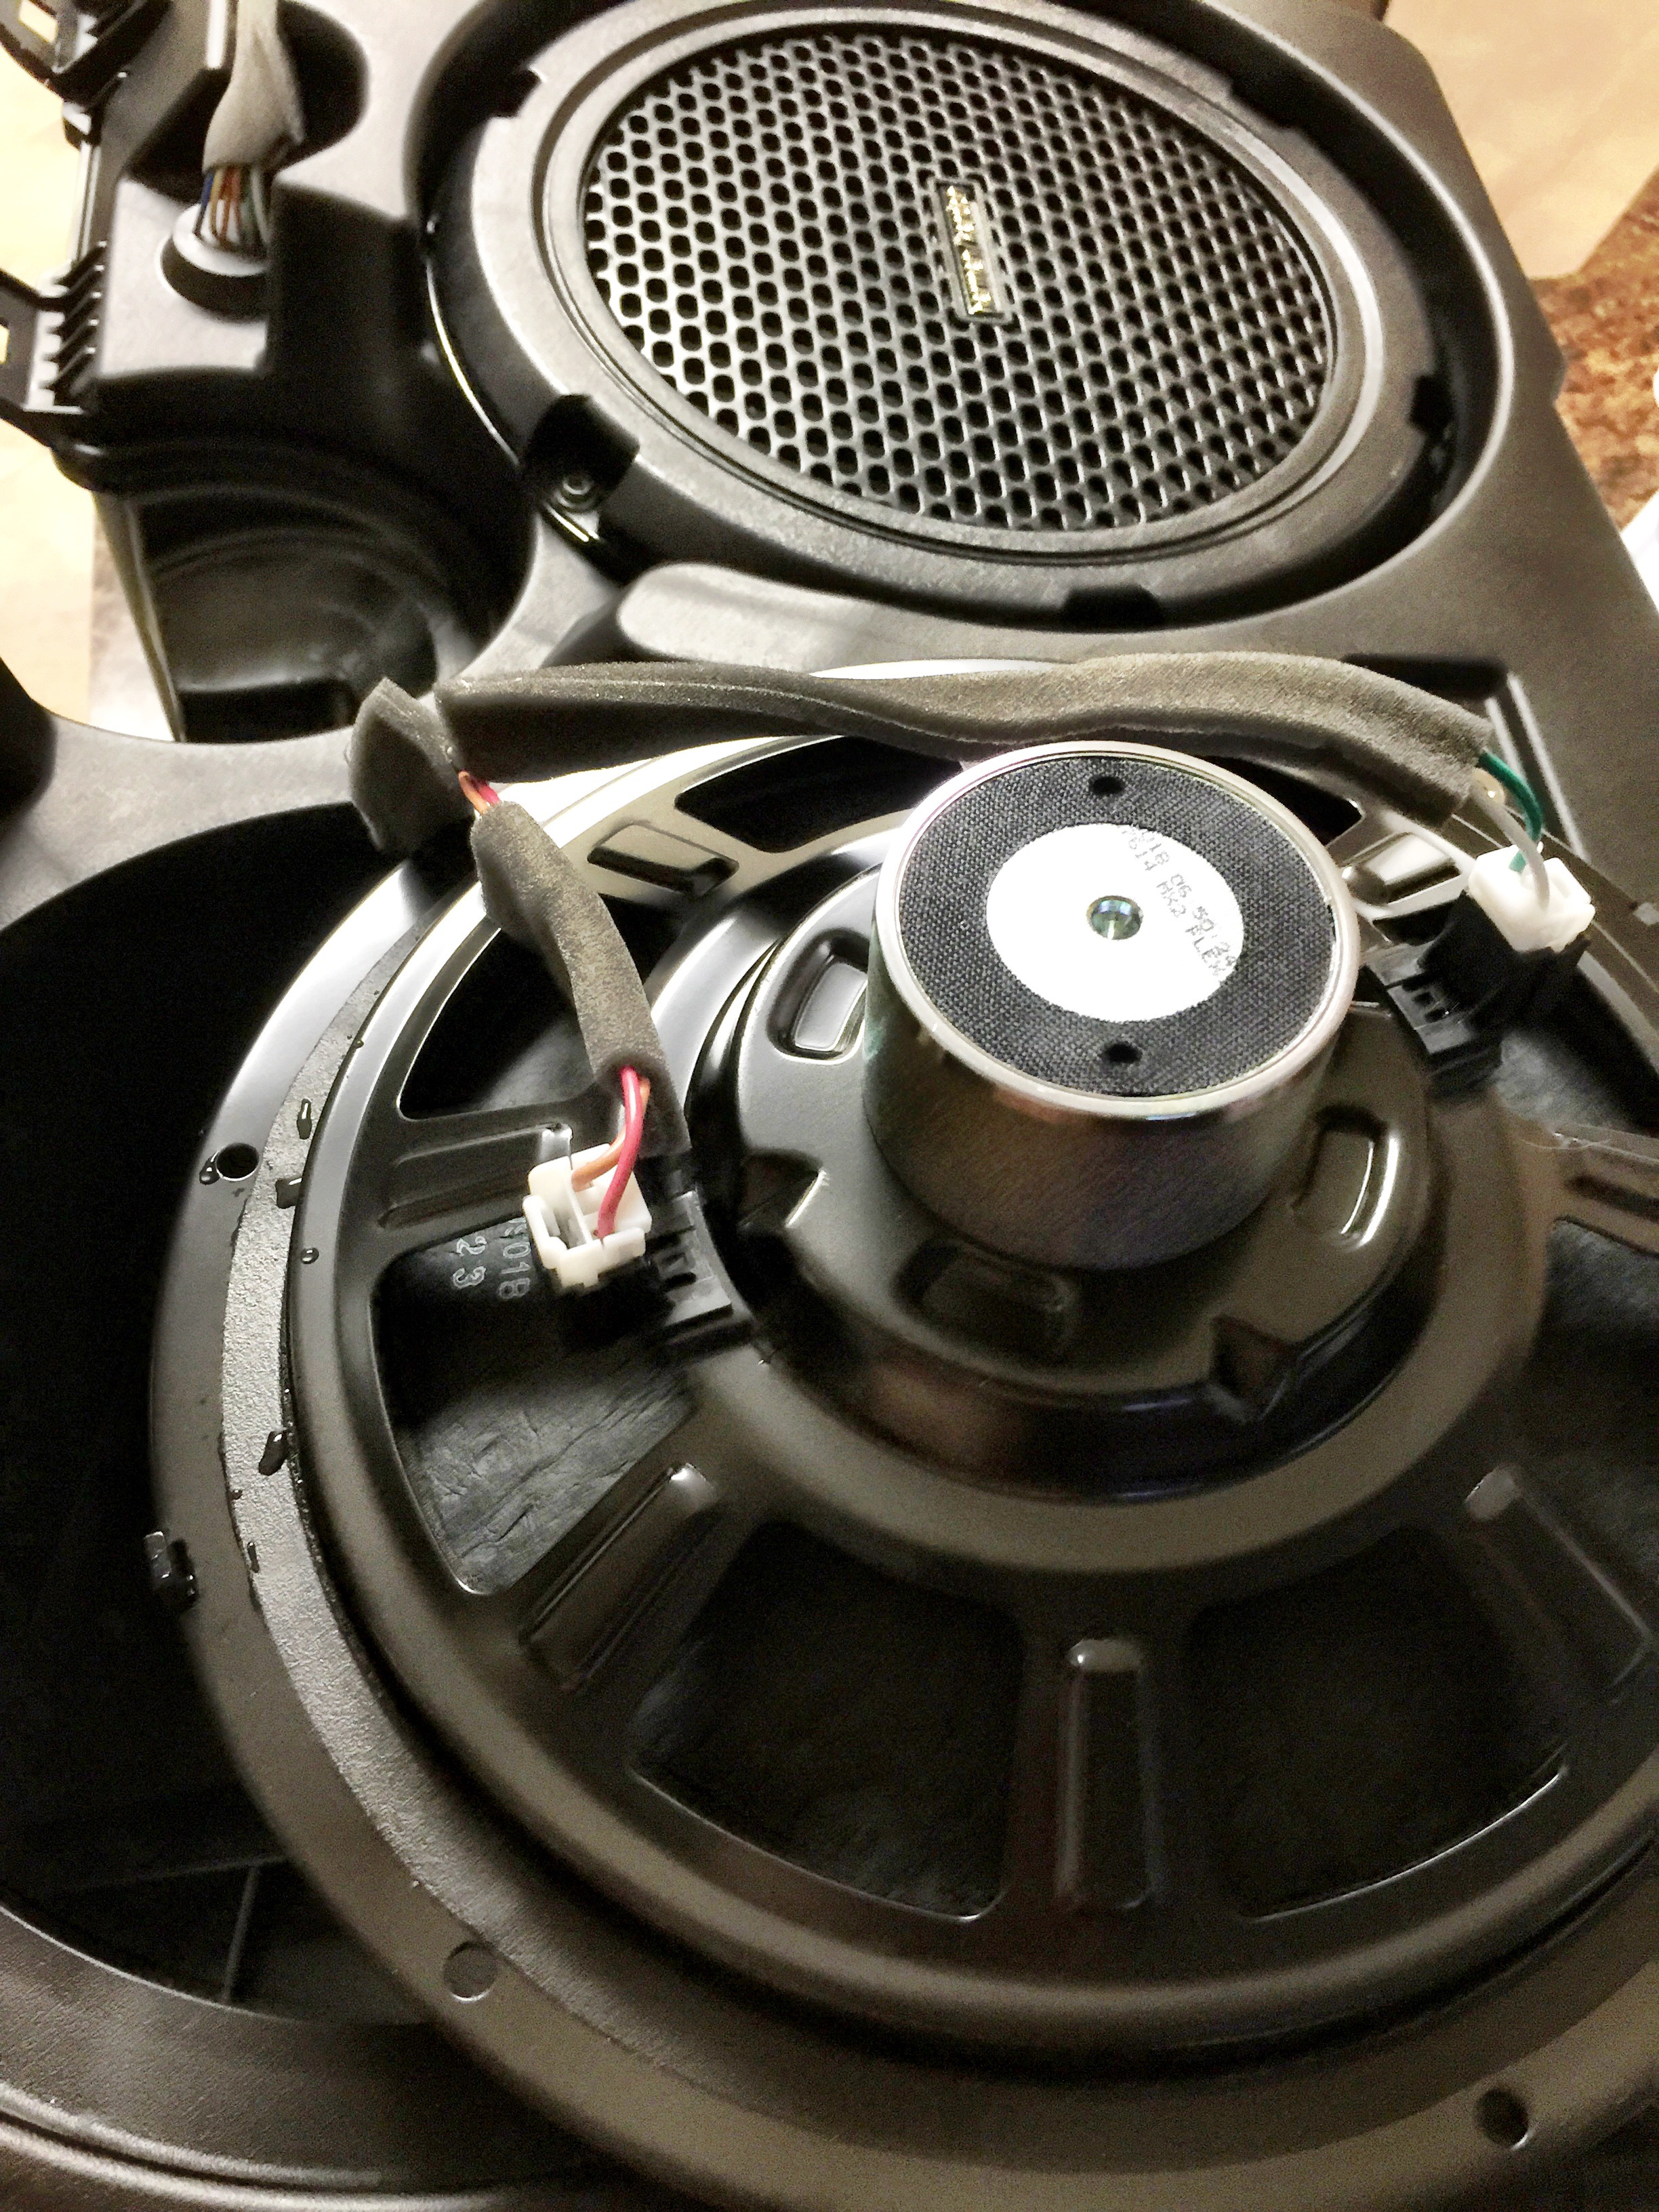 2014 Jeep Srt Grand Cherokee Wiring Diagram Harmon Kardon Speakers Planning To Replace The Factory Harman Subwoofers At